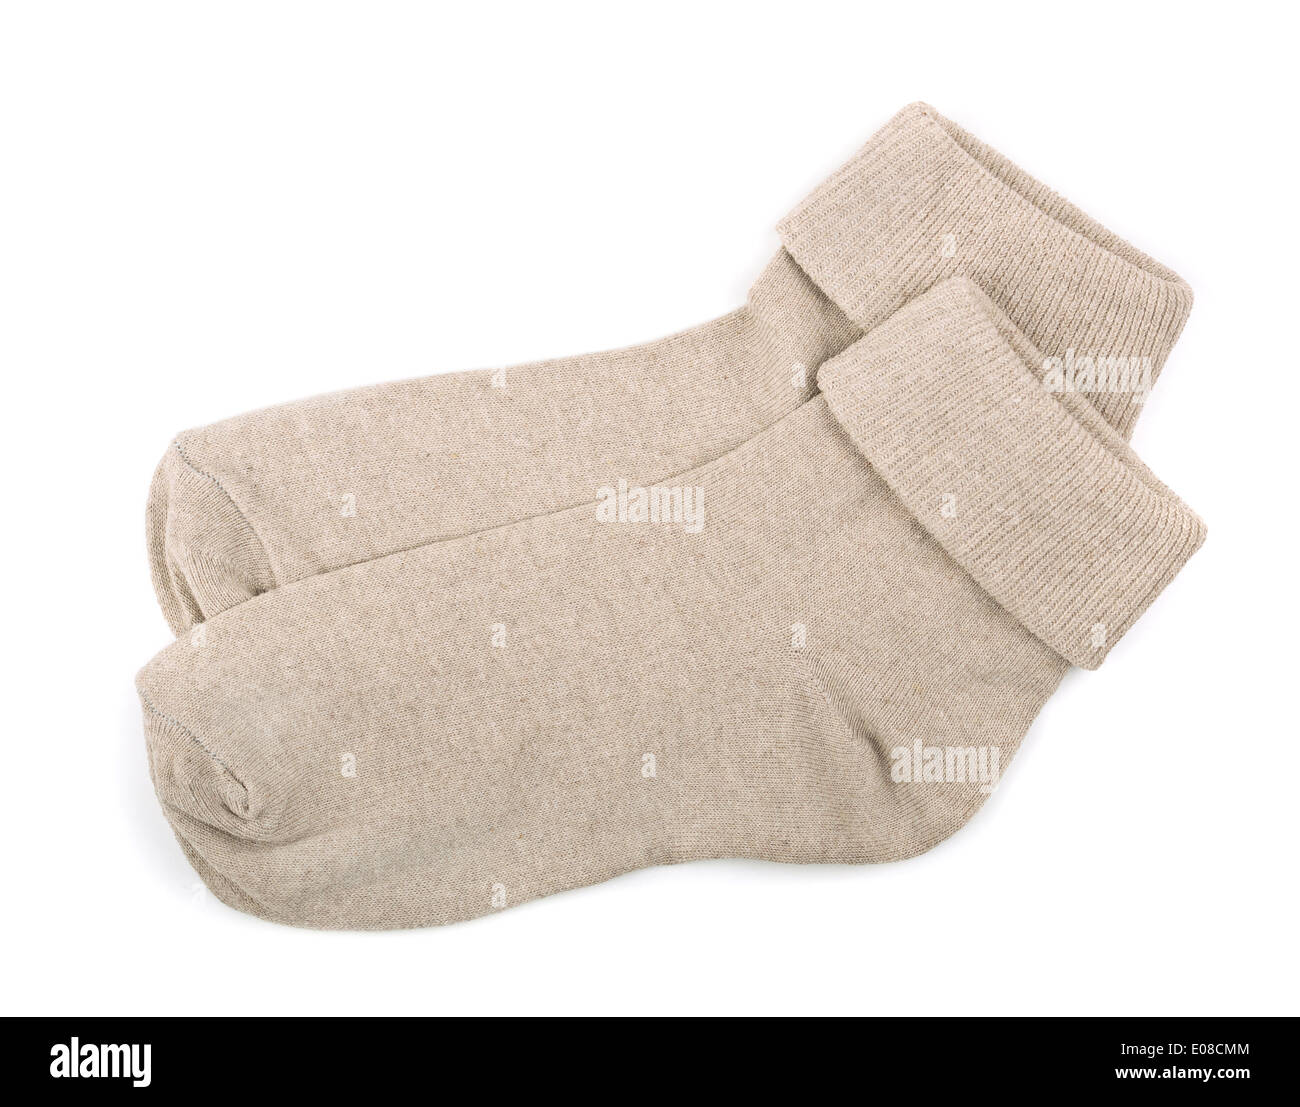 Pair of grey cotton socks isolated on white - Stock Image